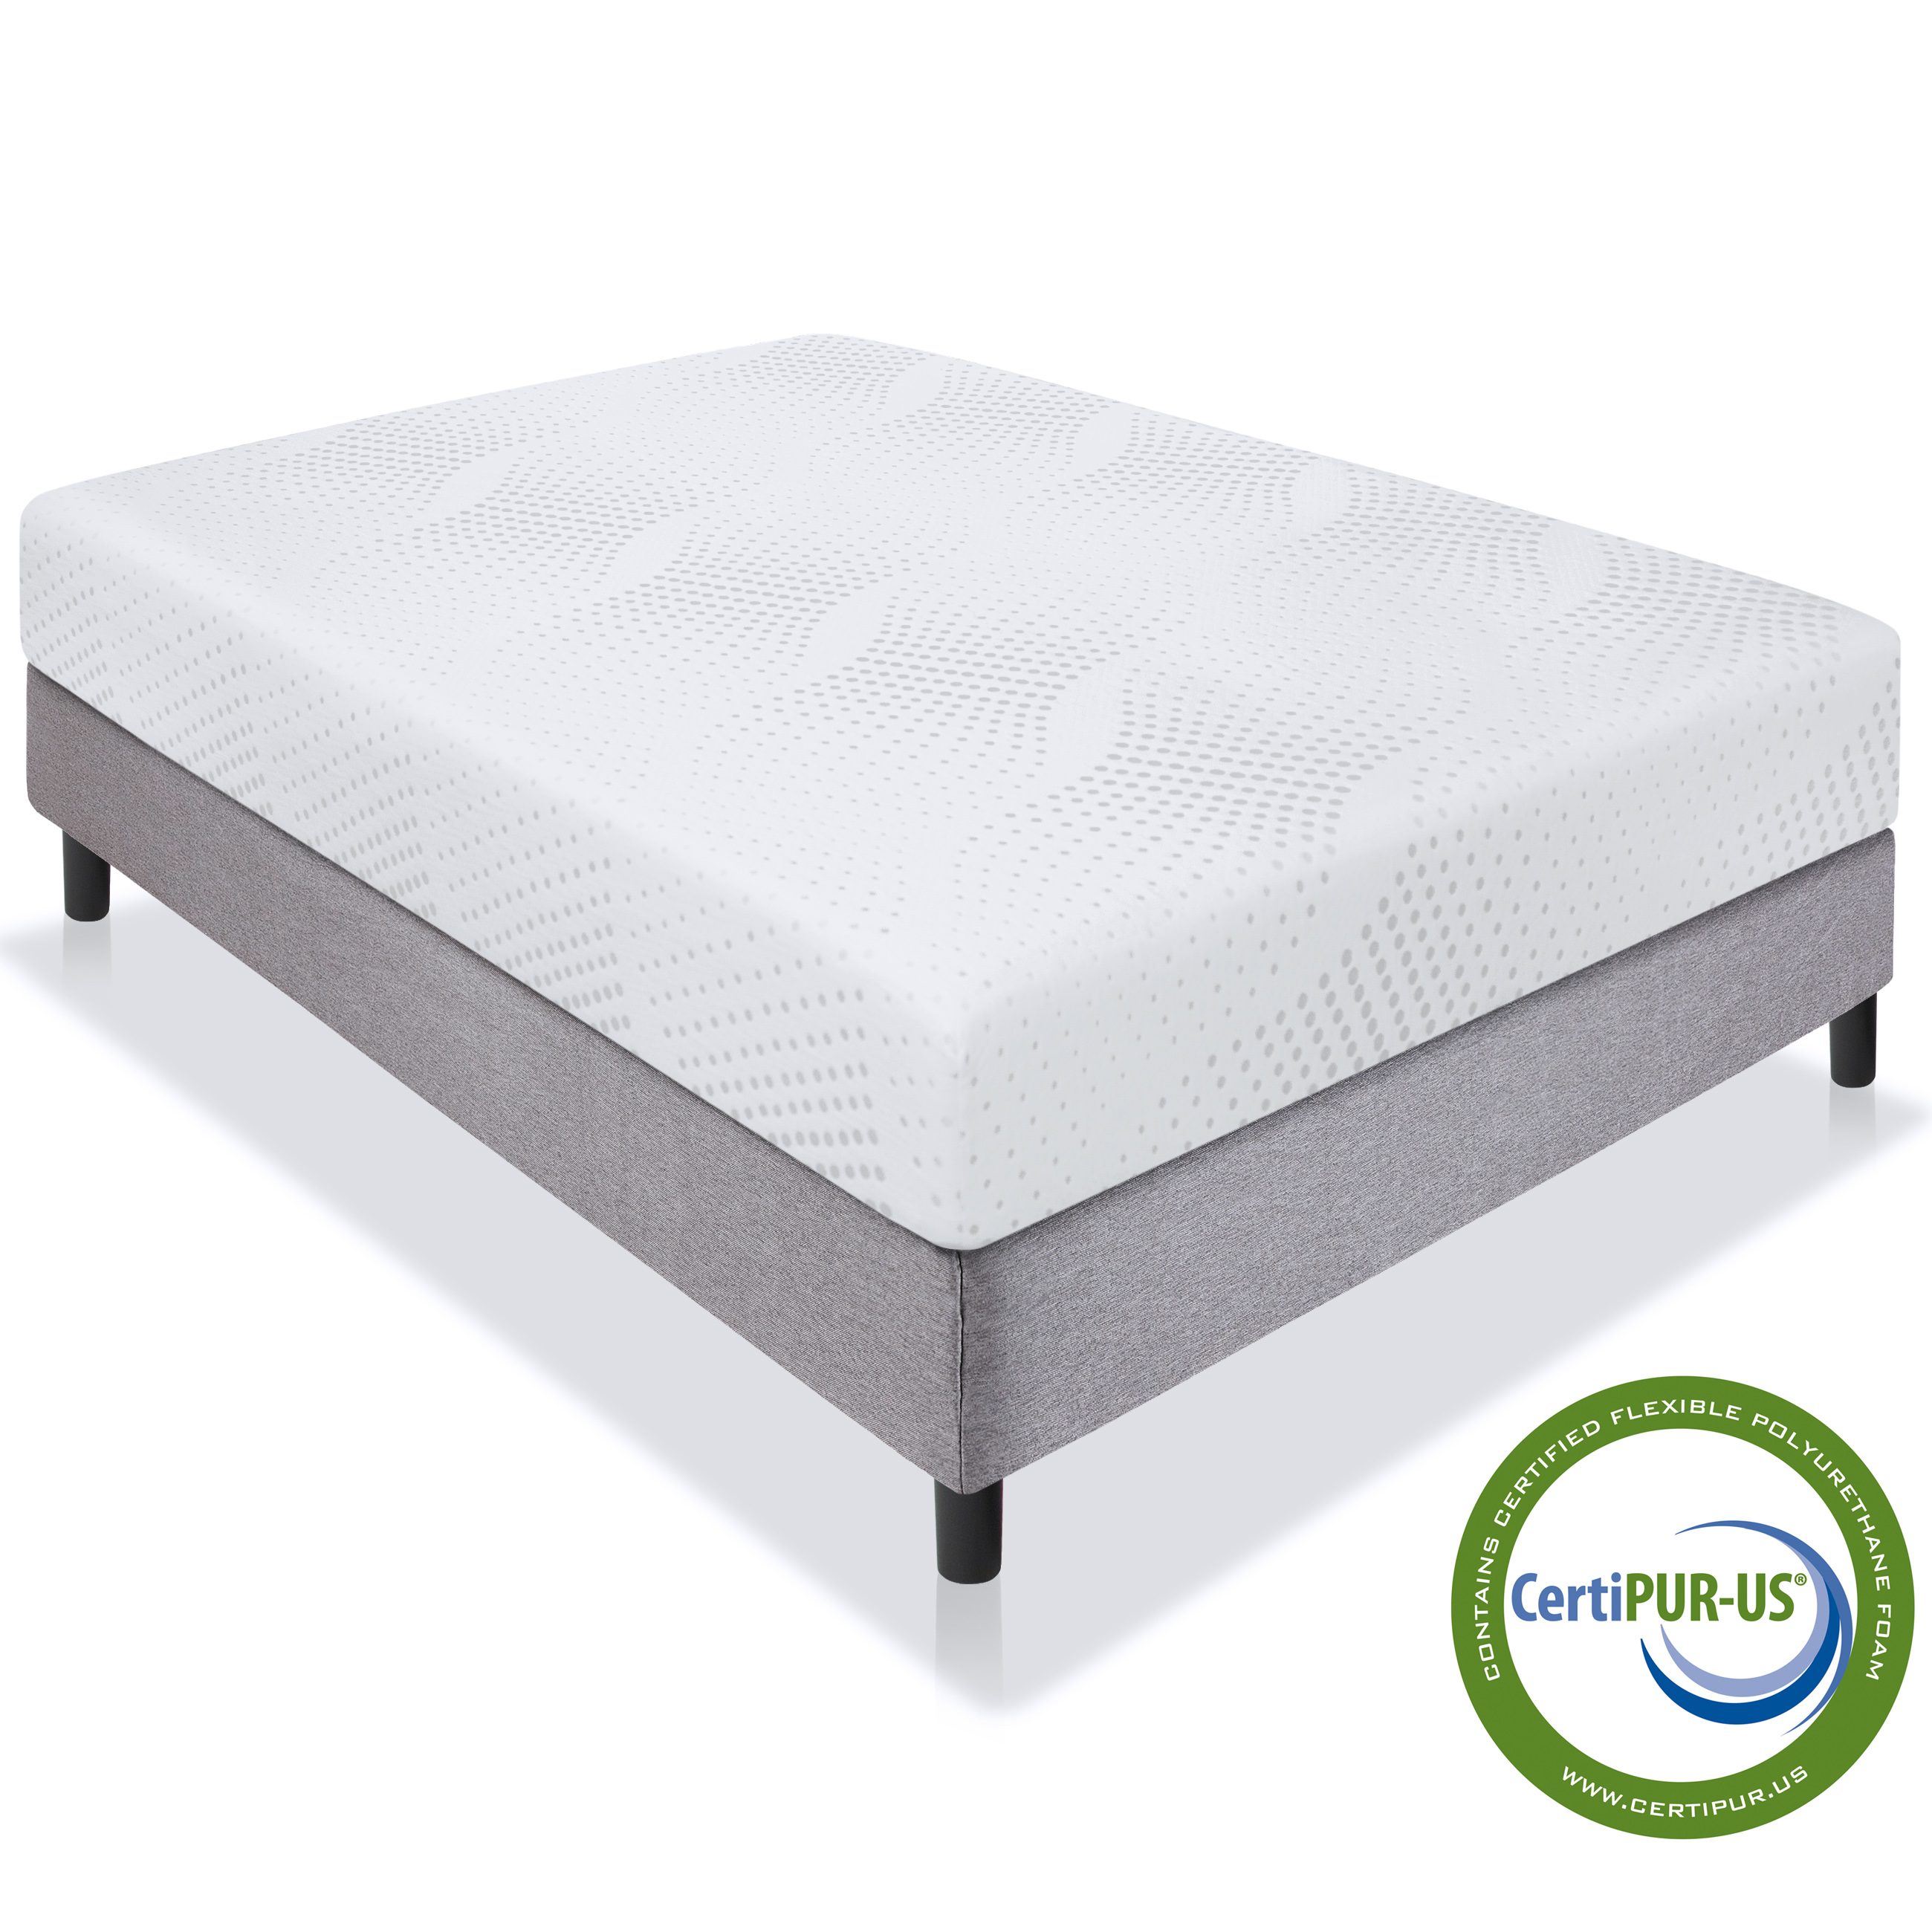 "Best Choice Products 10"" Dual Layered Memory Foam Mattress Full- CertiPUR-US... by"